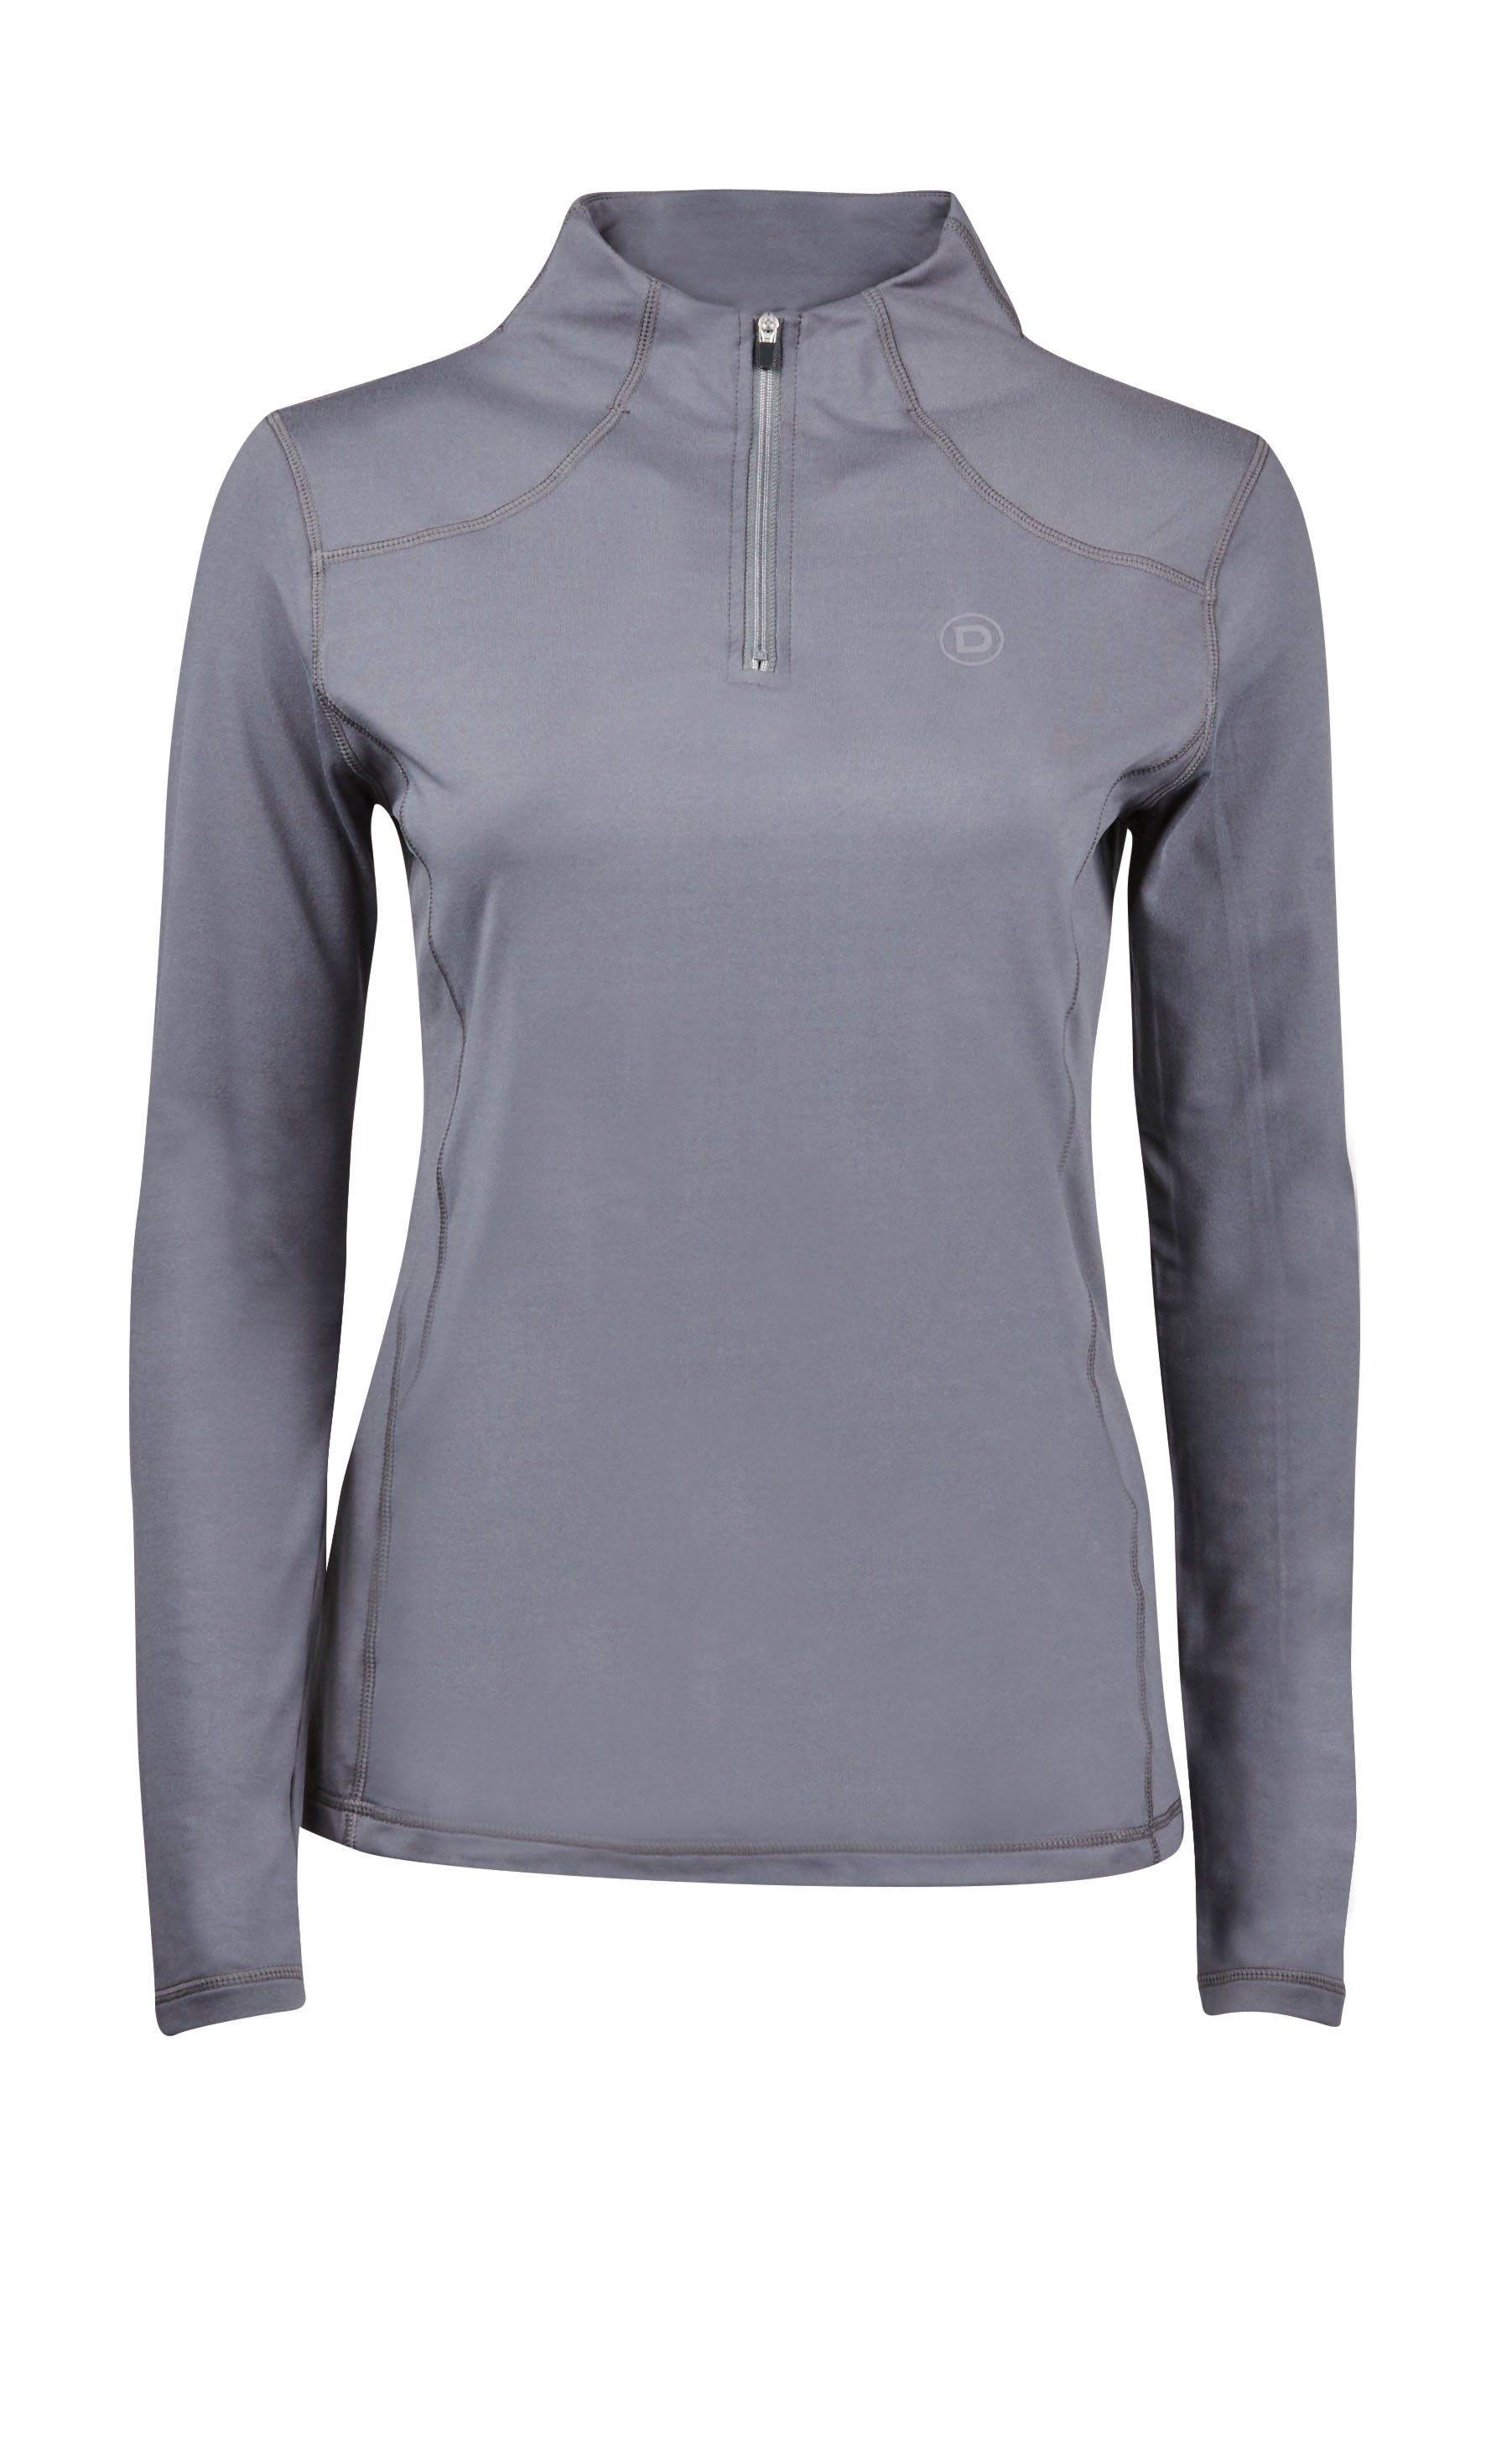 Dublin Diamond Long Sleeve Top